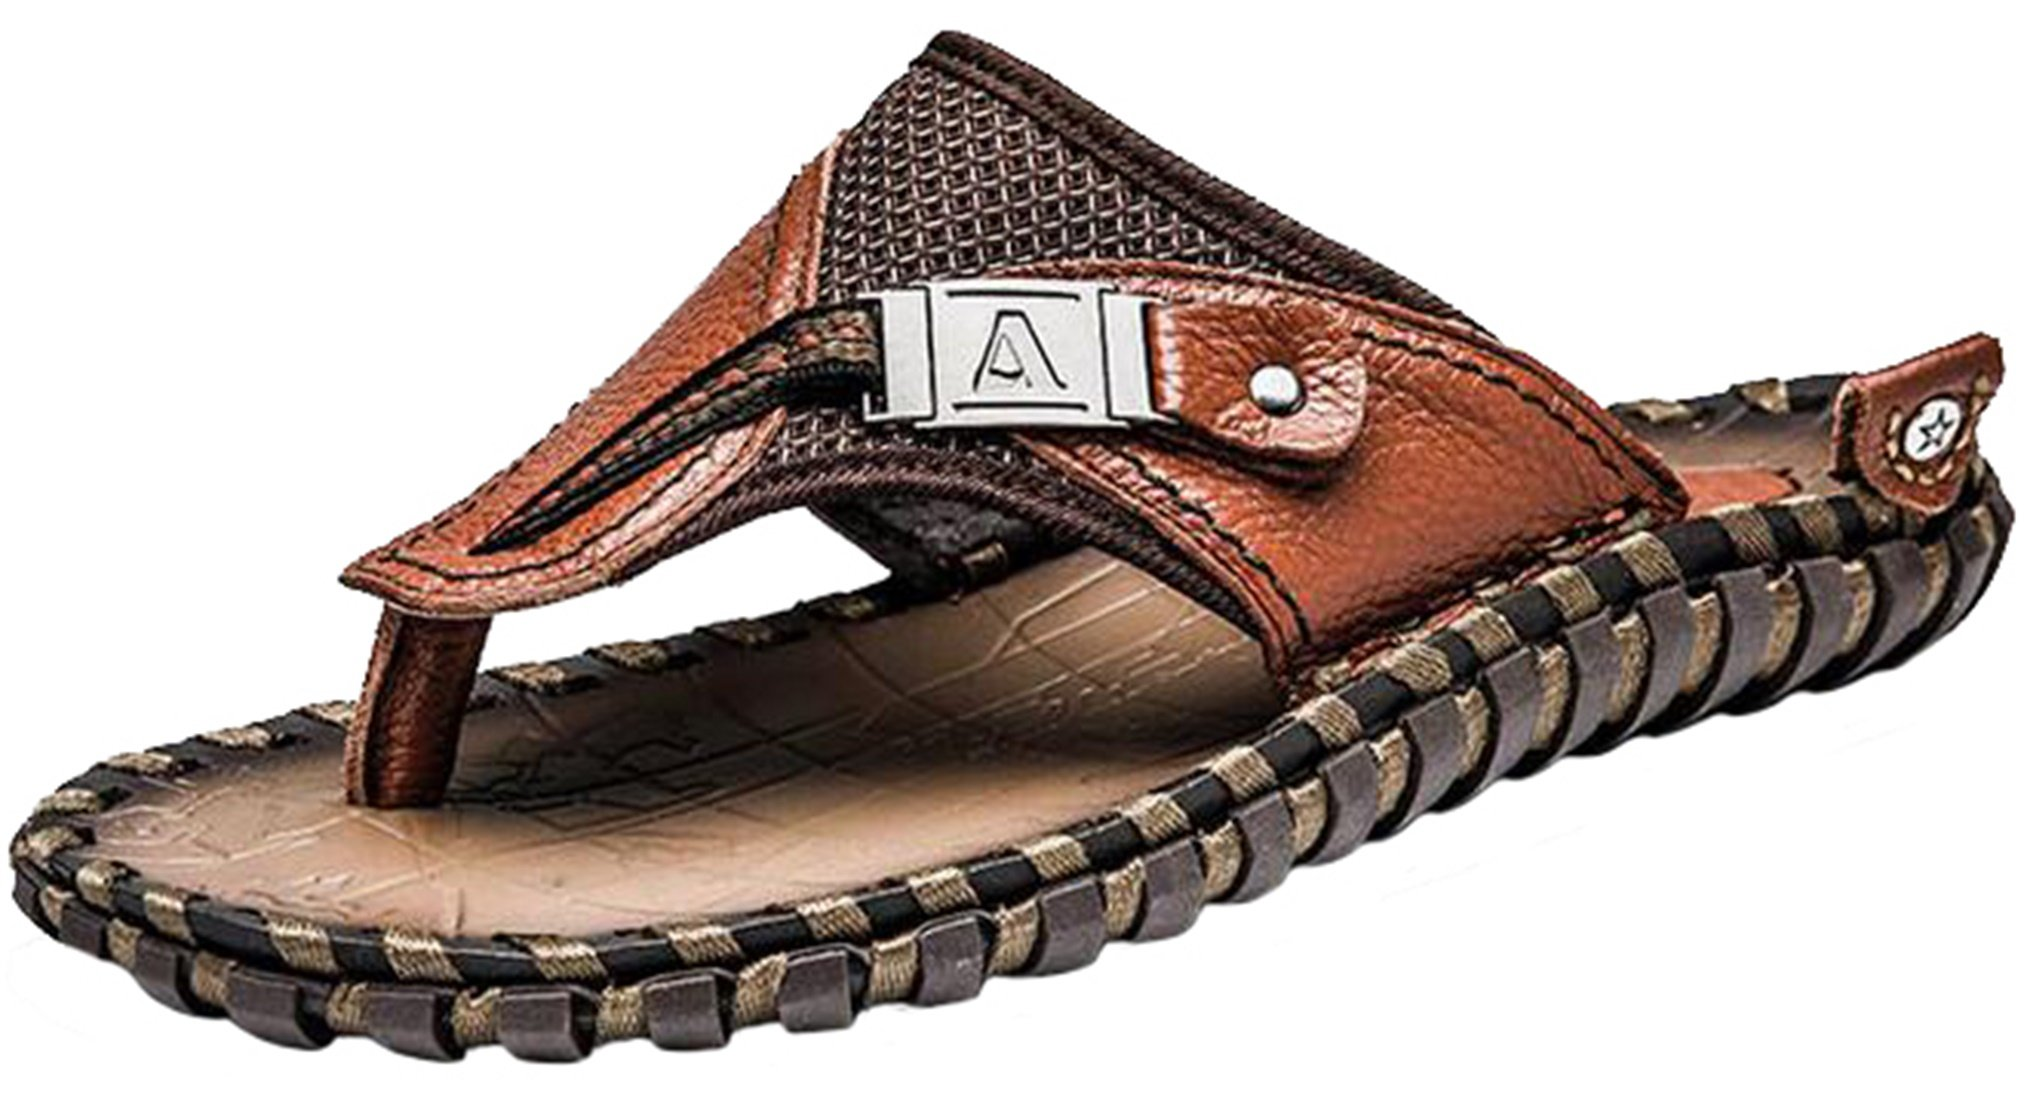 PPXID Men's Leather Flip-Flop Arch Support Thongs Comfort Slippers for Beach(Big Size Available)-Brown 10 US Size